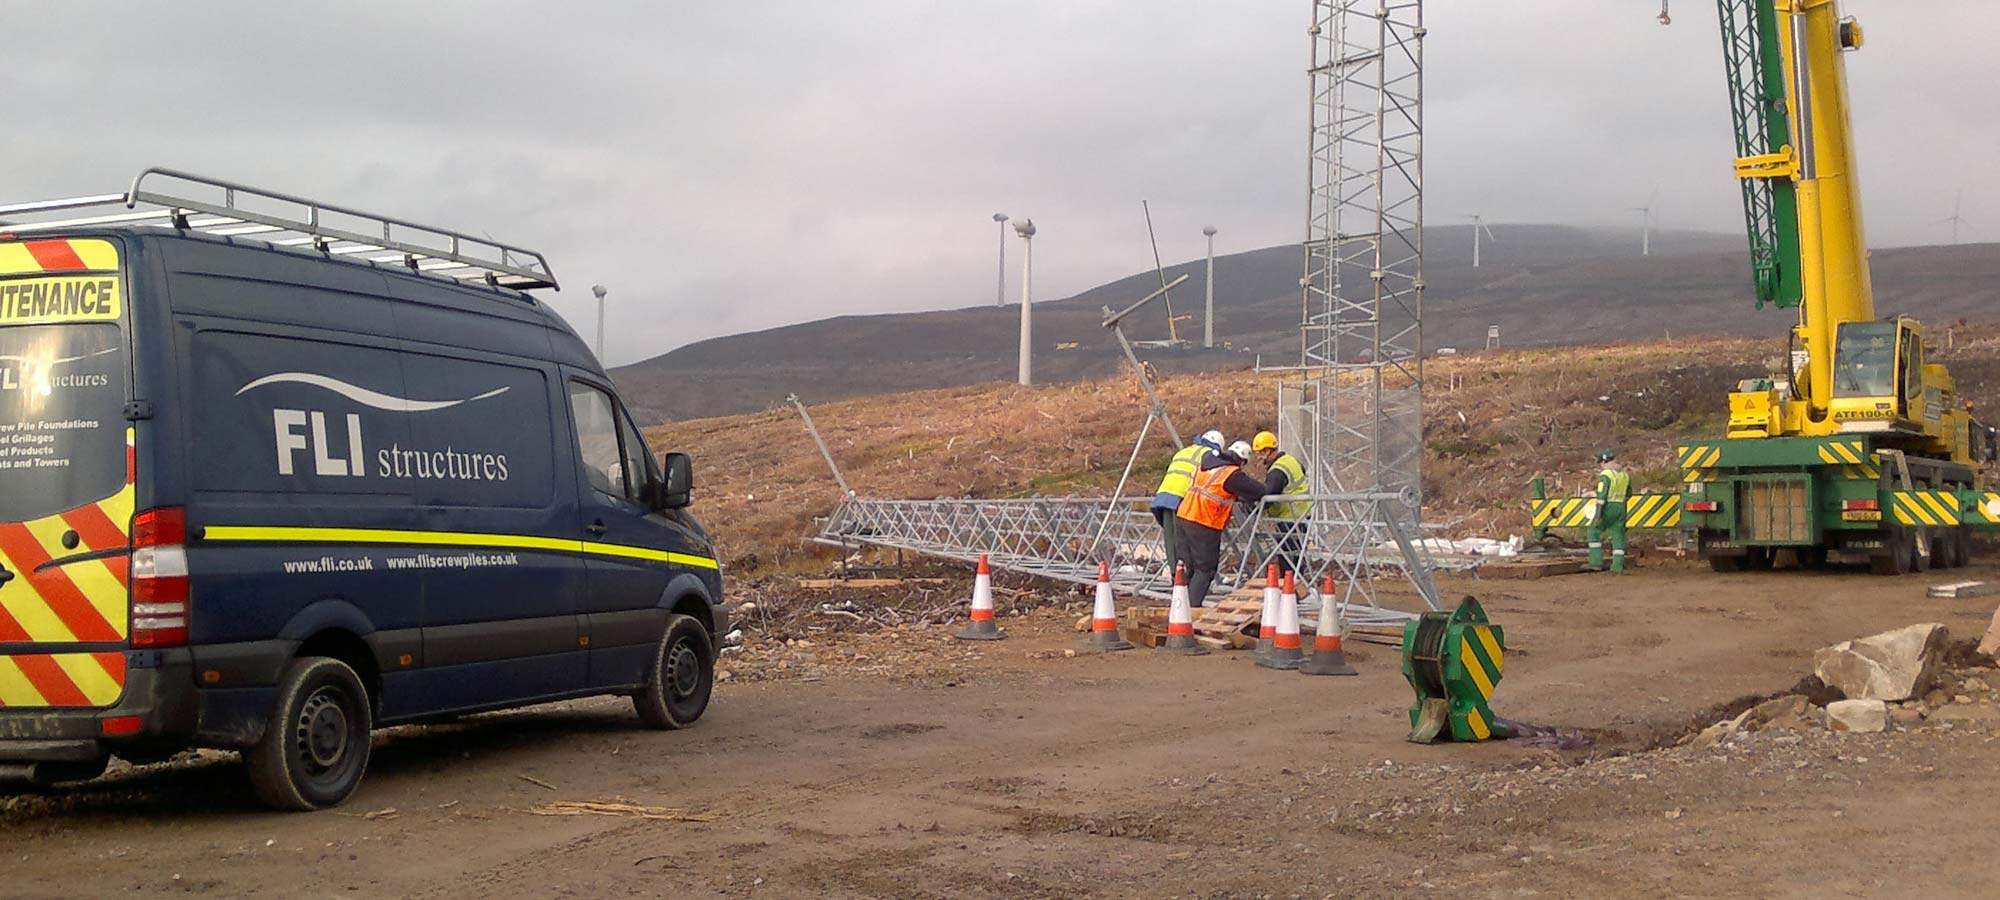 Temporary Guyed Met Masts from FLI Structures